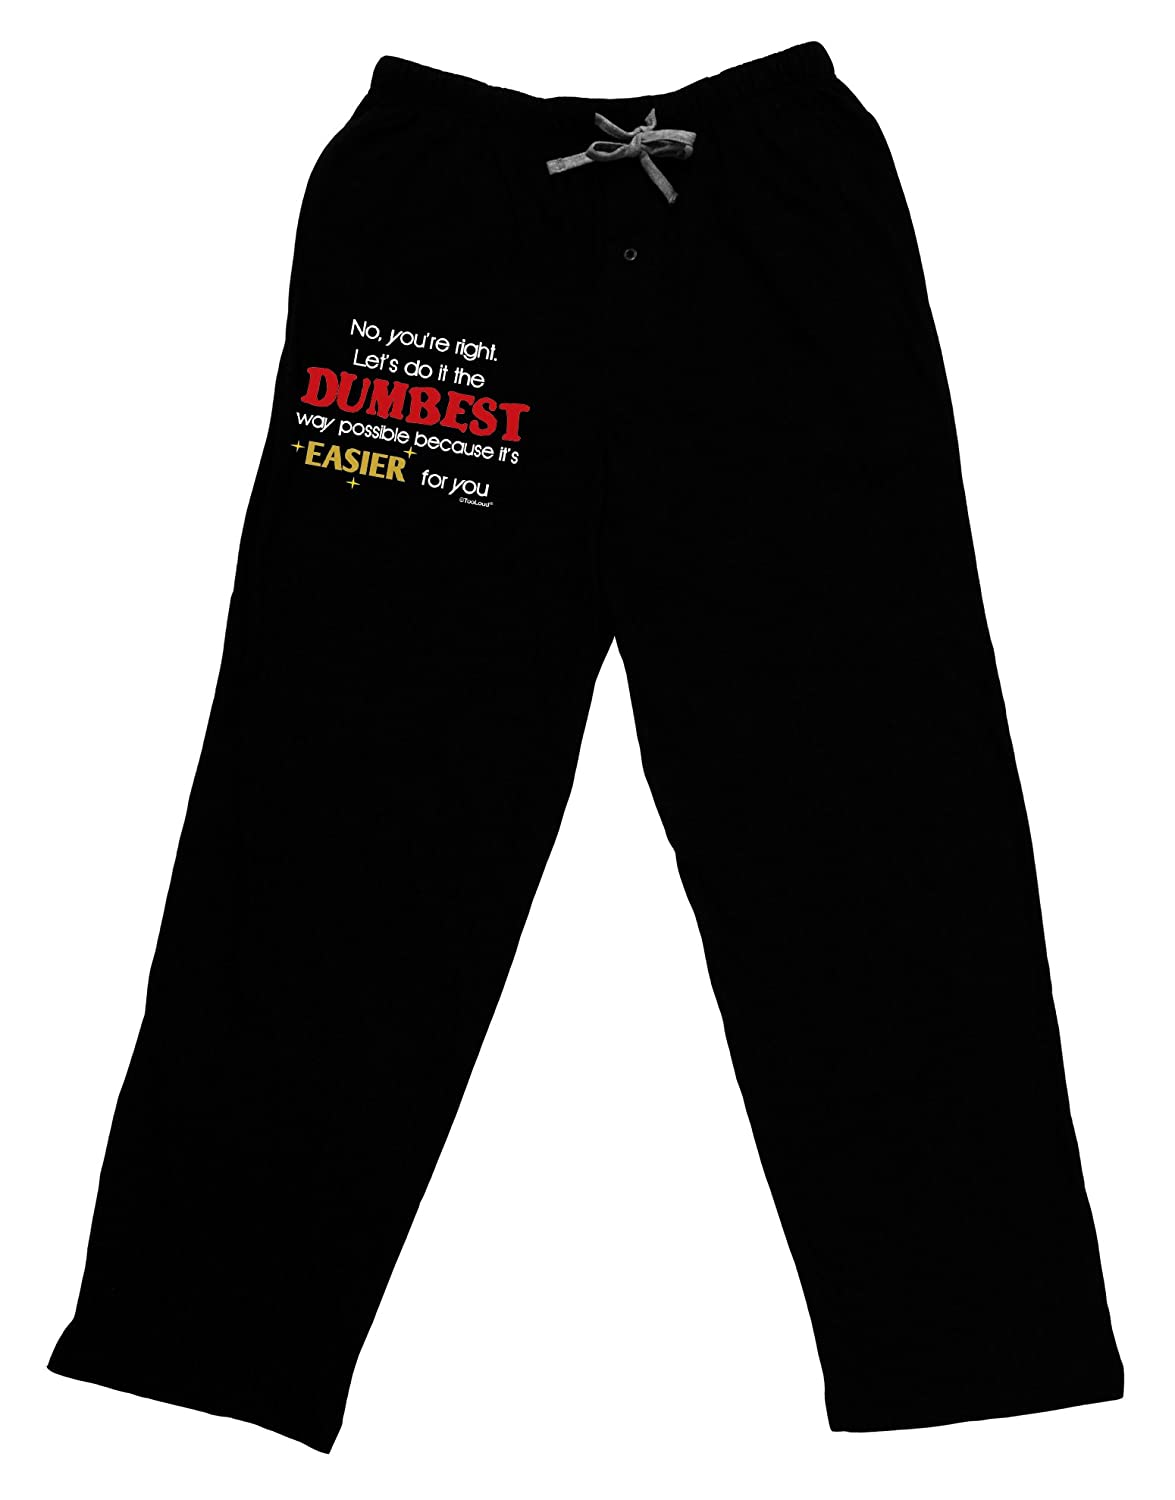 TooLoud No Your Right Lets Do it The Dumbest Way Adult Lounge Pants L-FM131W-TD-DRKLNGPNT-P